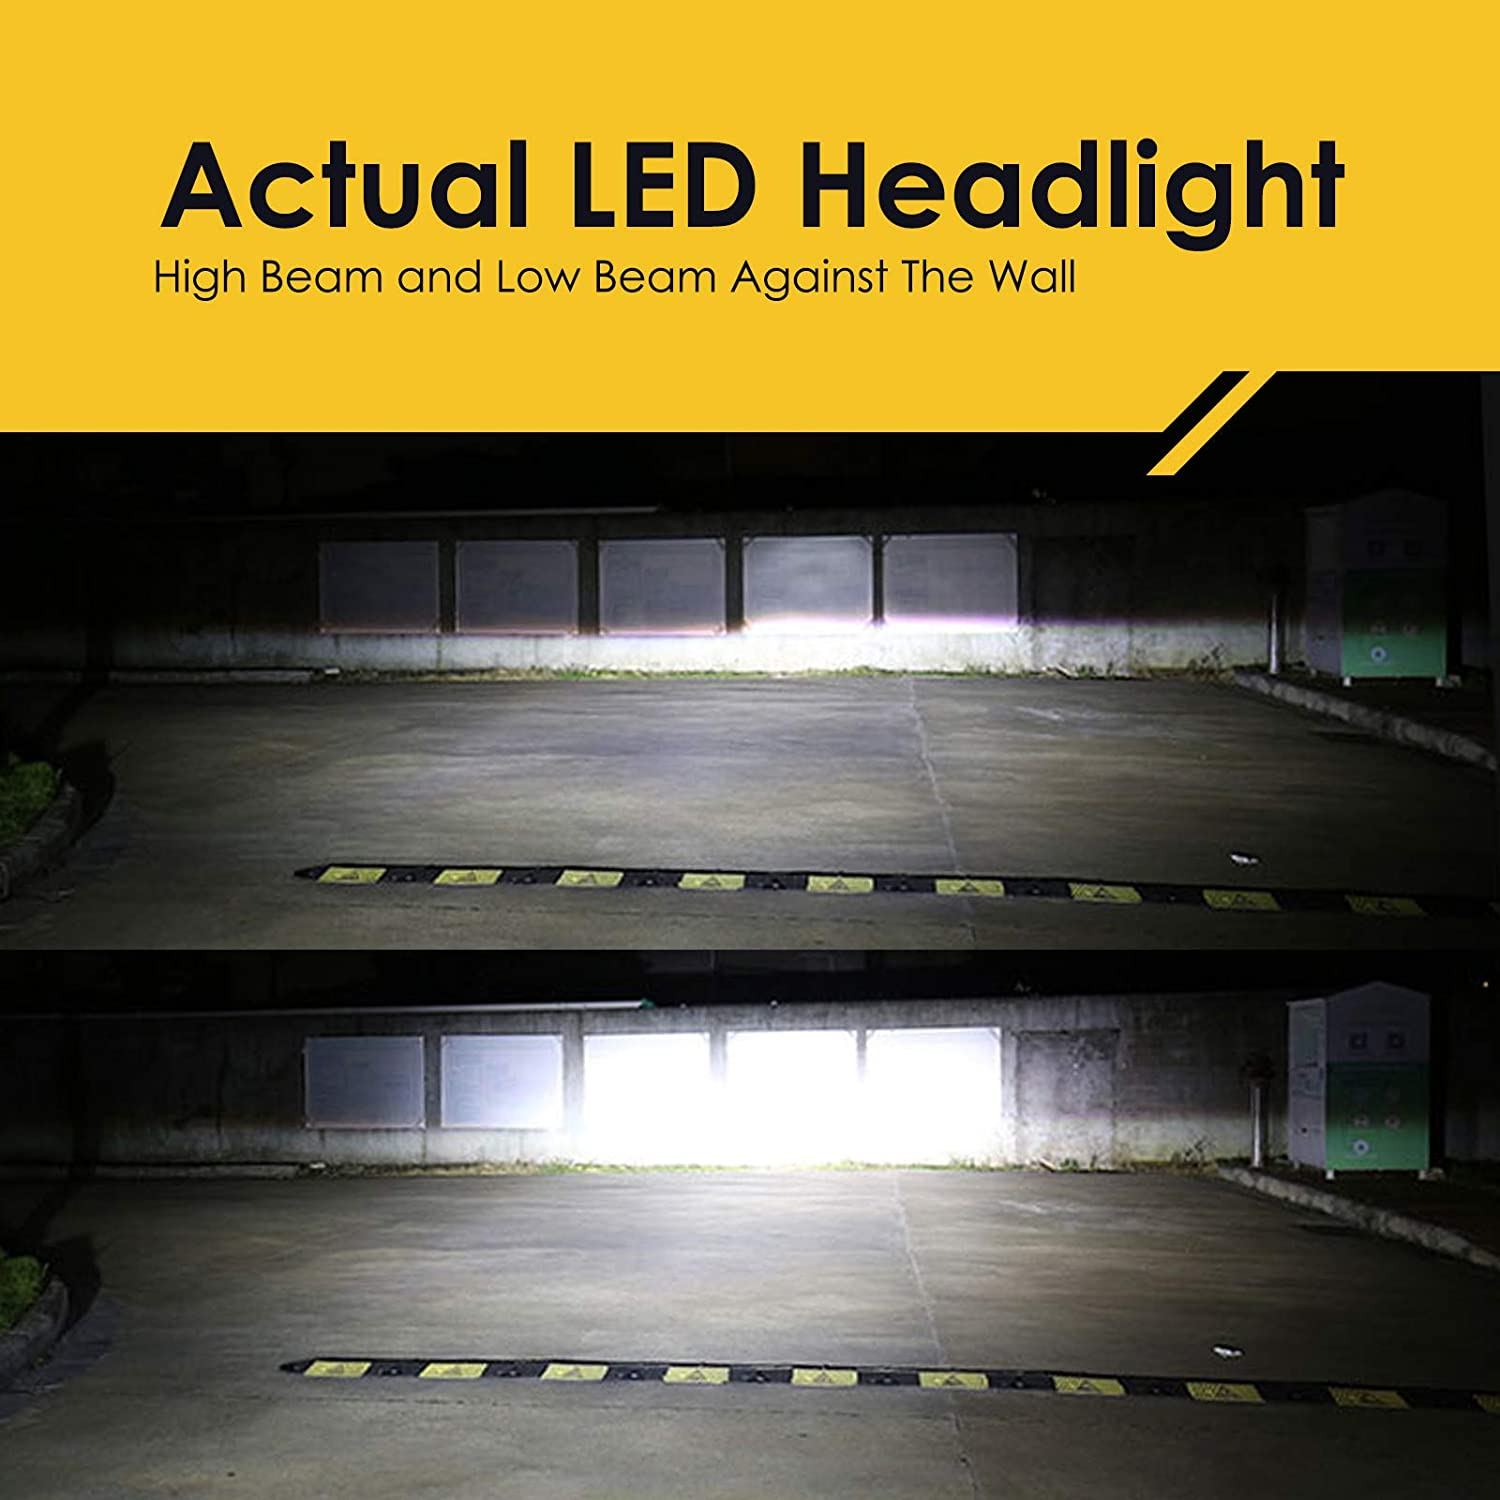 9005 SLR Lighting LED Headlight Bulbs All-in-One with HID FREE EXTRA BACKUP Kit HB3 -7,000Lm 6000K Cool White CREE